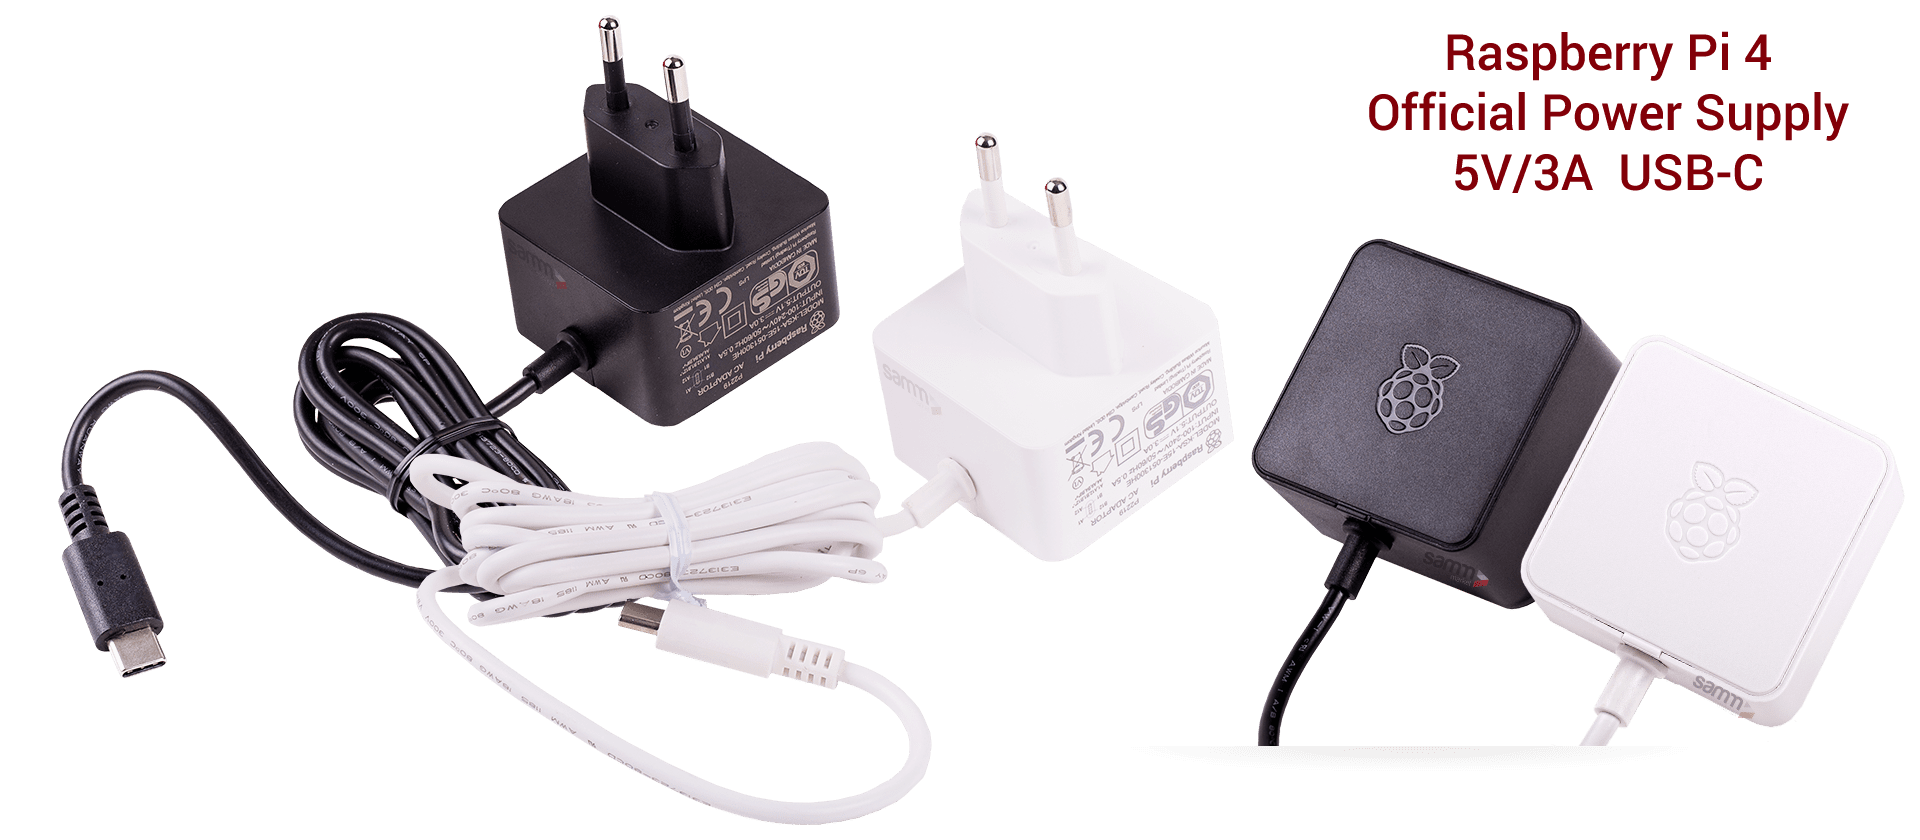 raspberry-pi-4-official-power-supply